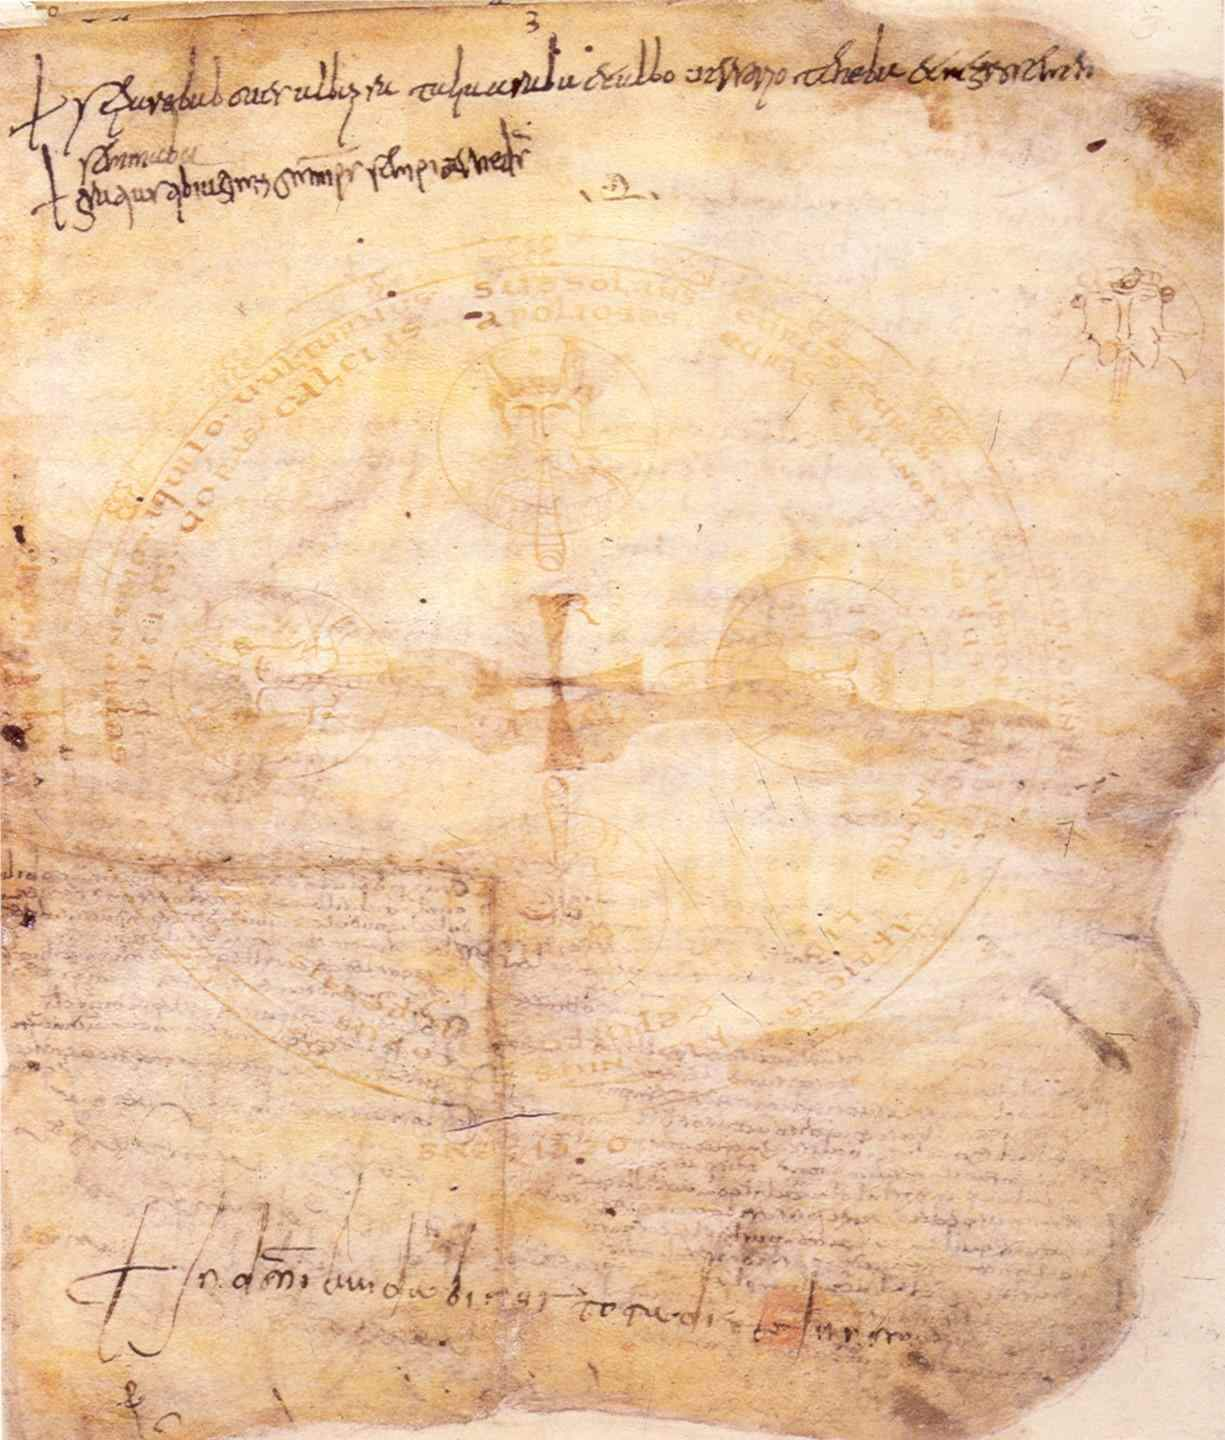 Indovinello Veronese, about 900 AD, ink on parchment. Biblioteca Capitolare, Verona [http://en.wikipedia.org/wiki/File:Indovinello_veronese.jpg]